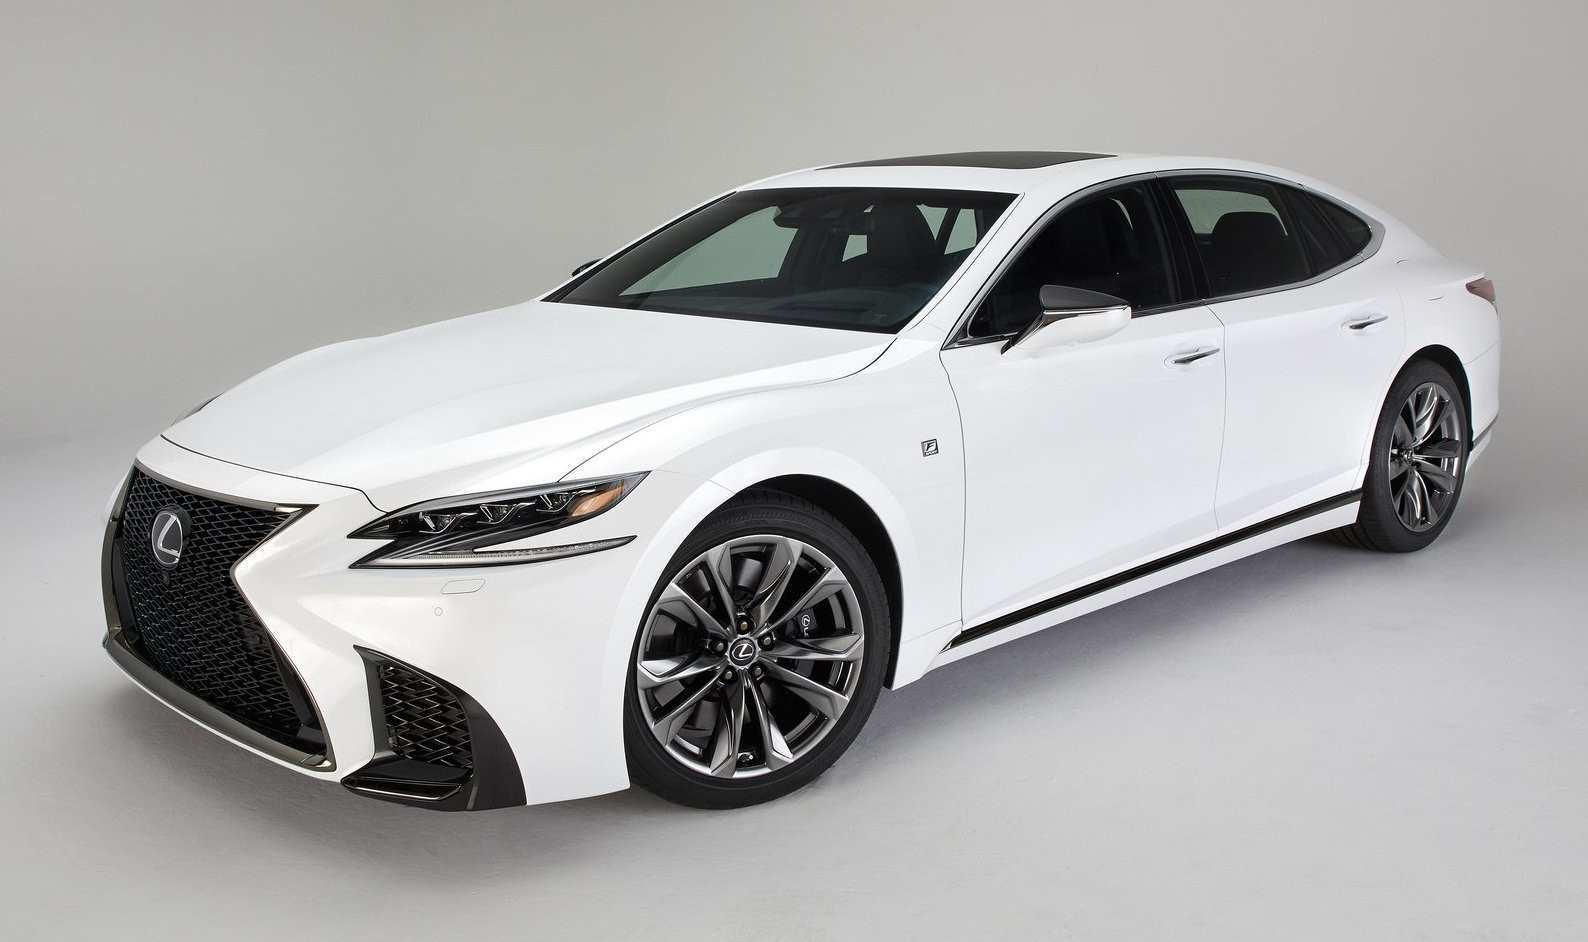 76 Gallery of 2020 Lexus Is350 F Sport Interior for 2020 Lexus Is350 F Sport